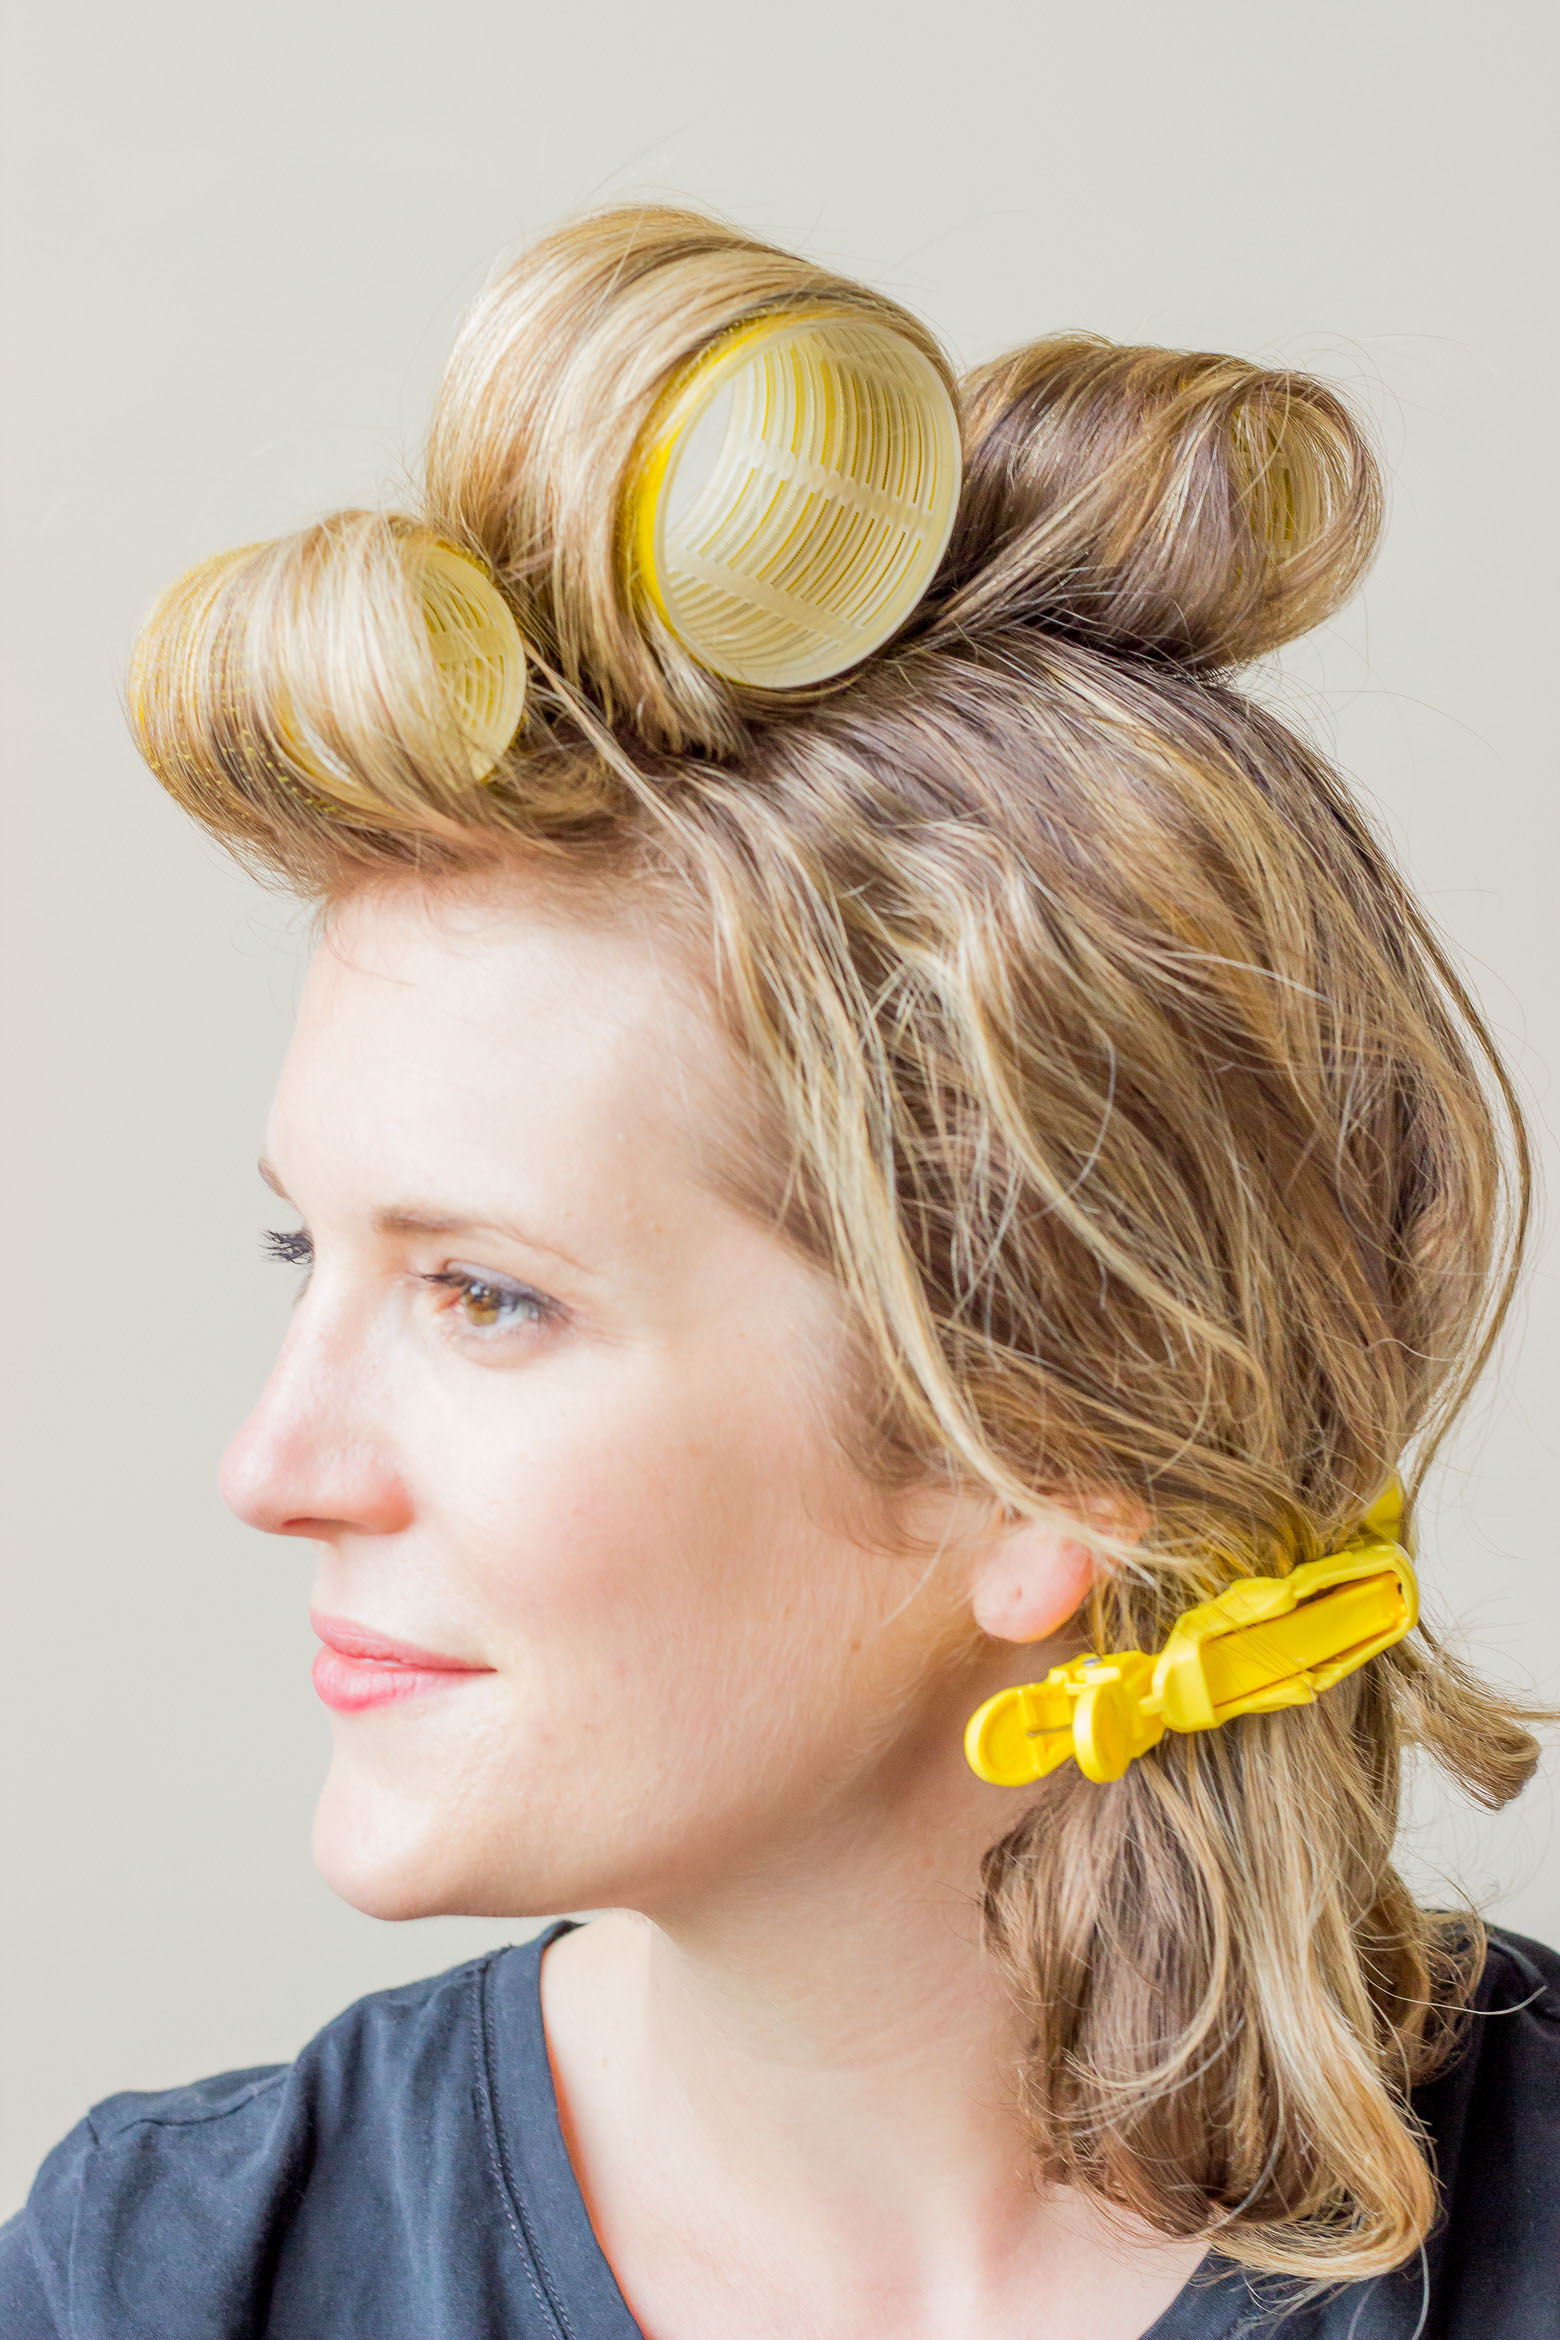 Dry Bar Velcro rollers on Belle Meets World blog